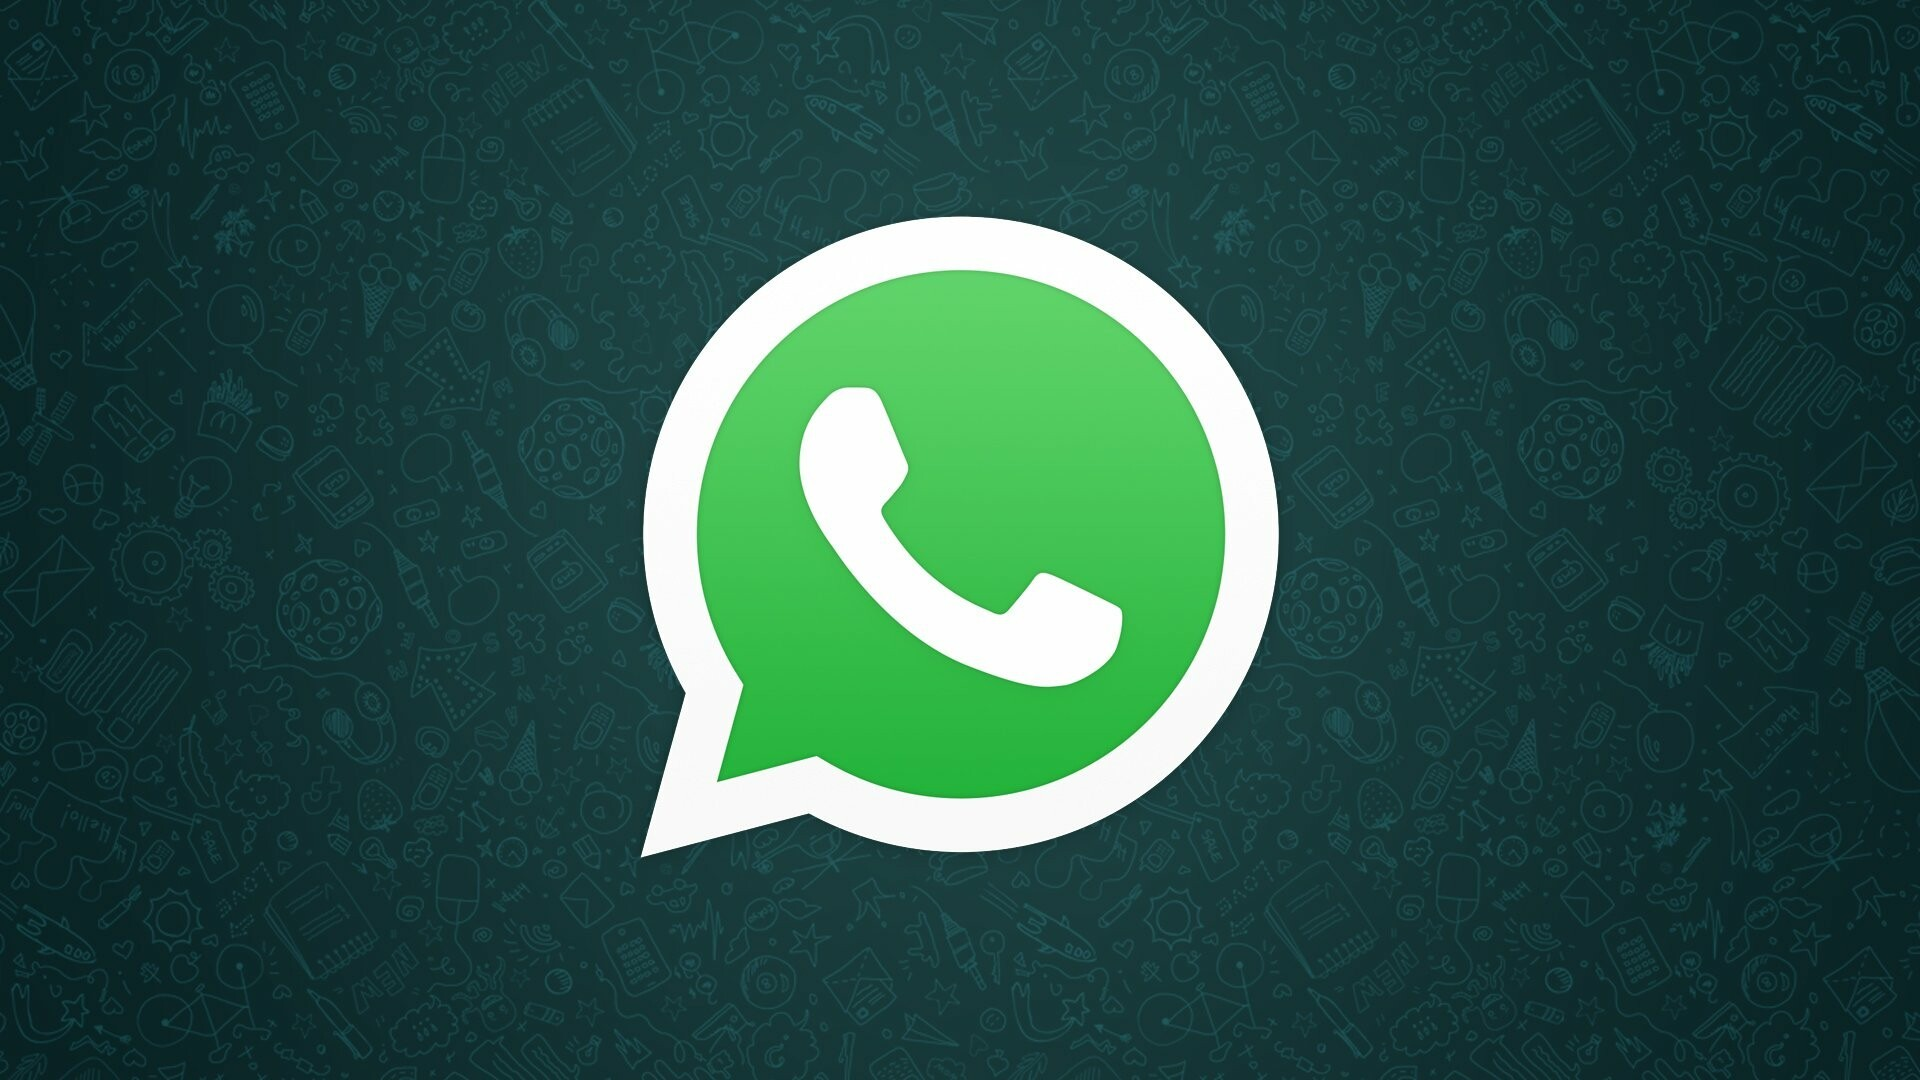 WhatsUp10 - A new WhatsApp client for BlackBerry 10 from